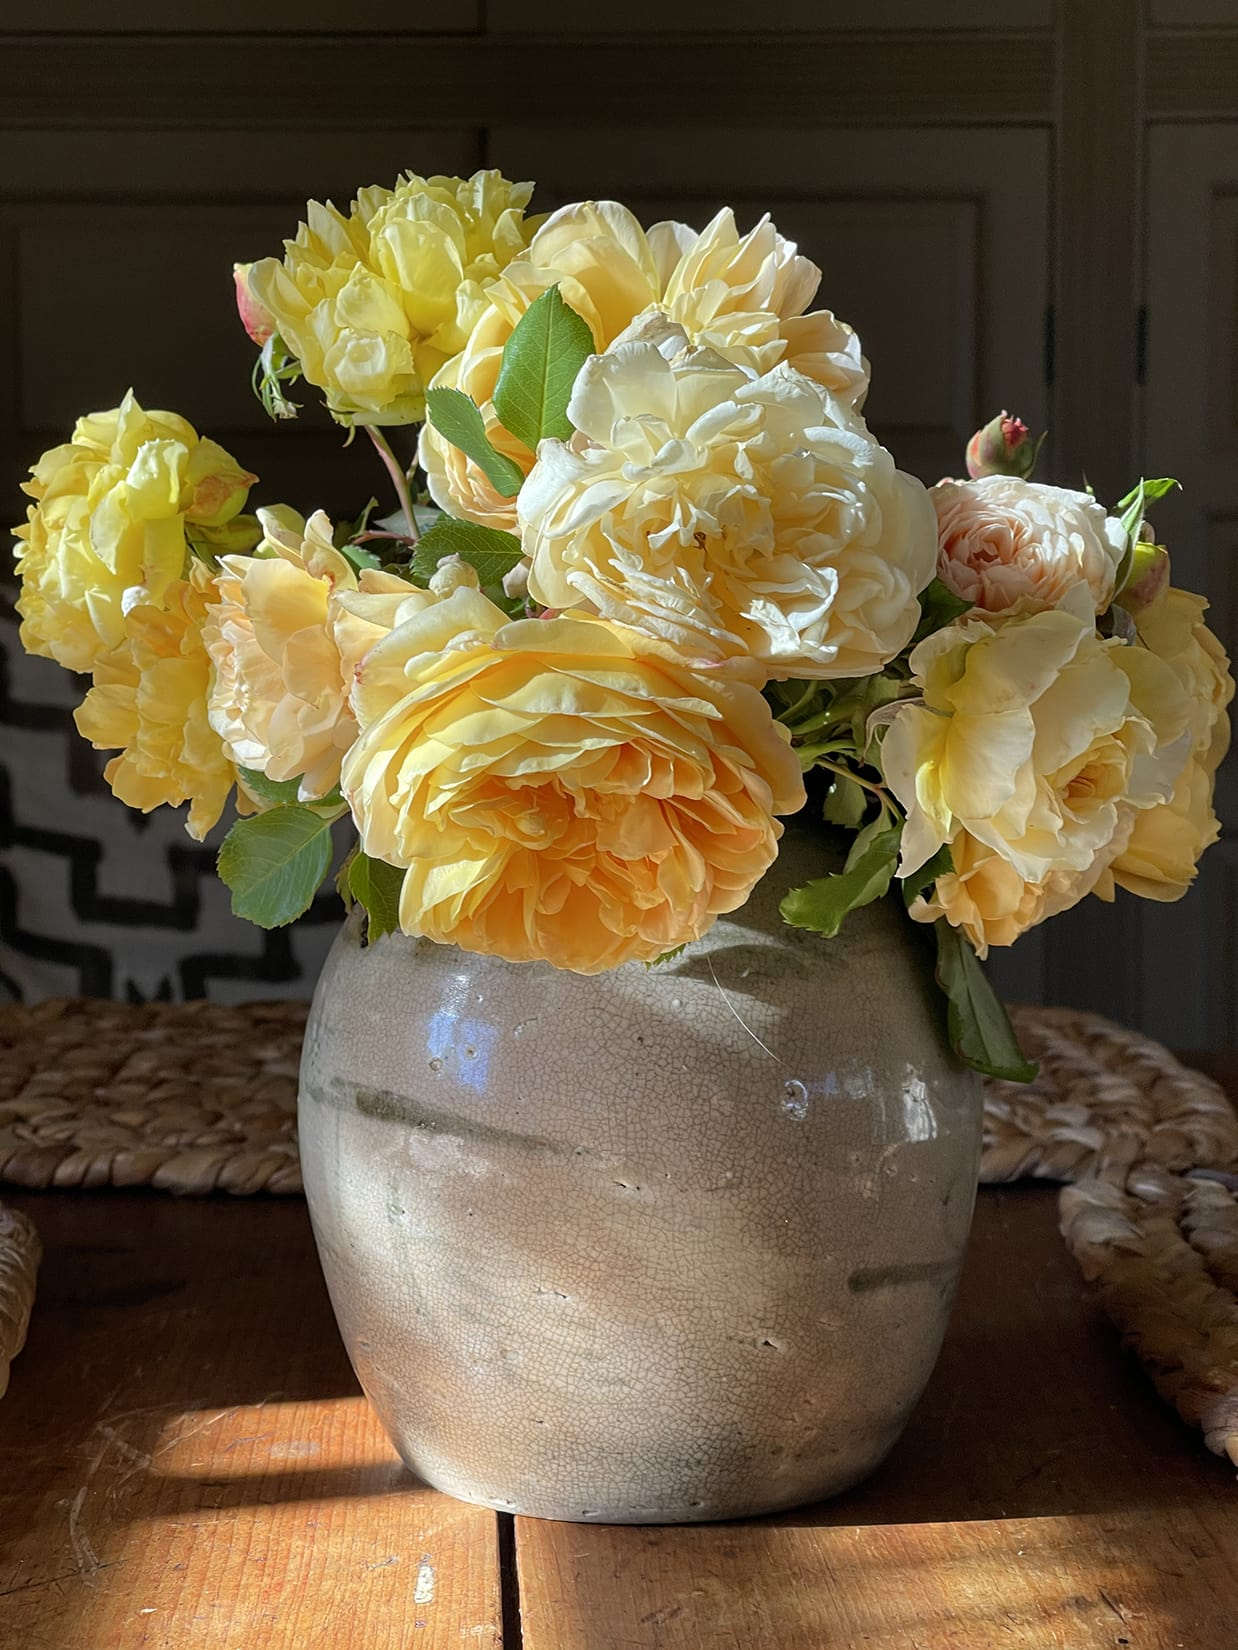 Cindy Hattersley's roses